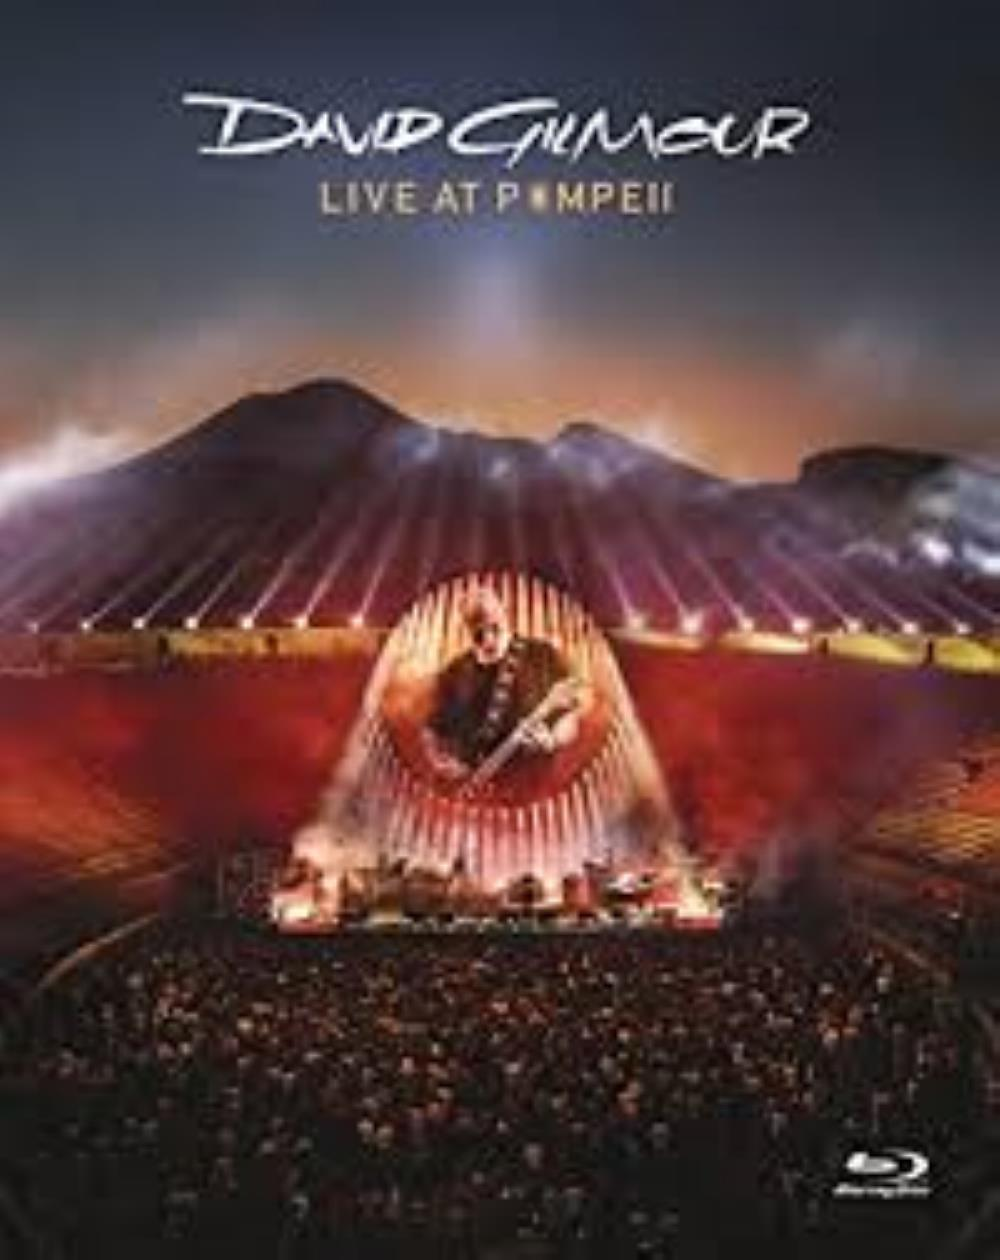 David Gilmour - Live At Pompeii DVD (album) cover